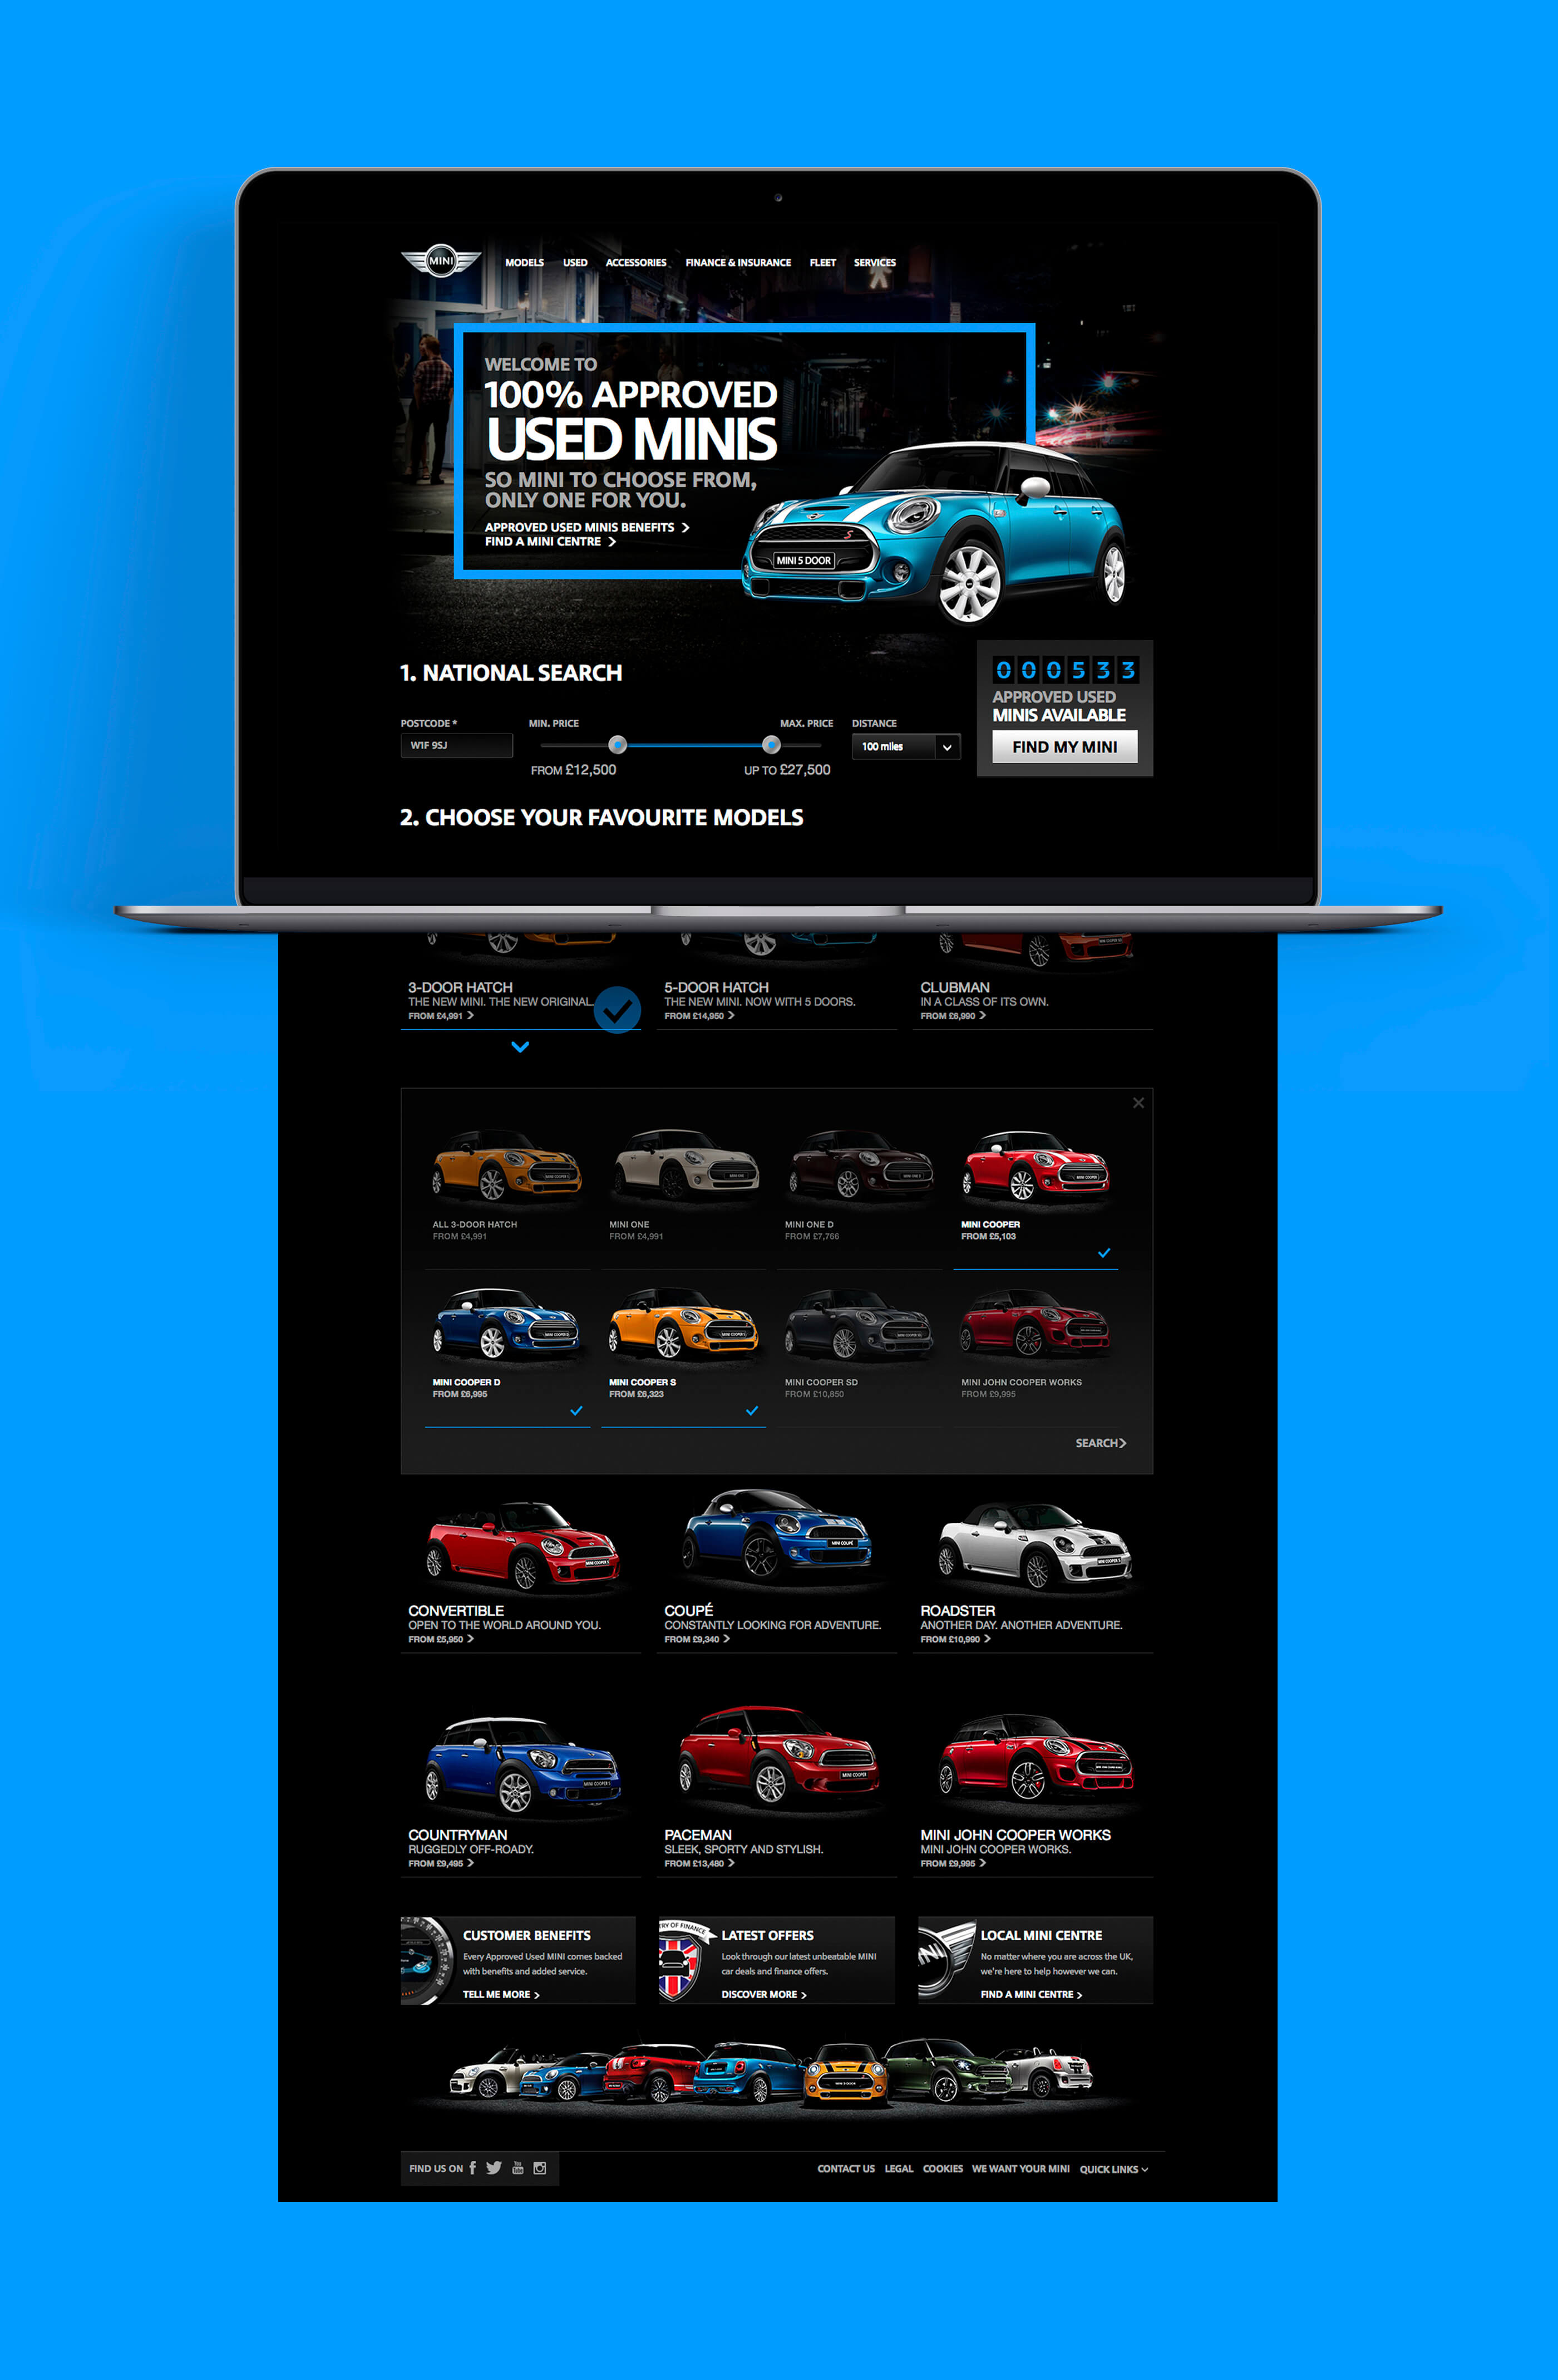 Full homepage design for BMW Mini, superimposed onto an Apple MacBook on a bright blue background